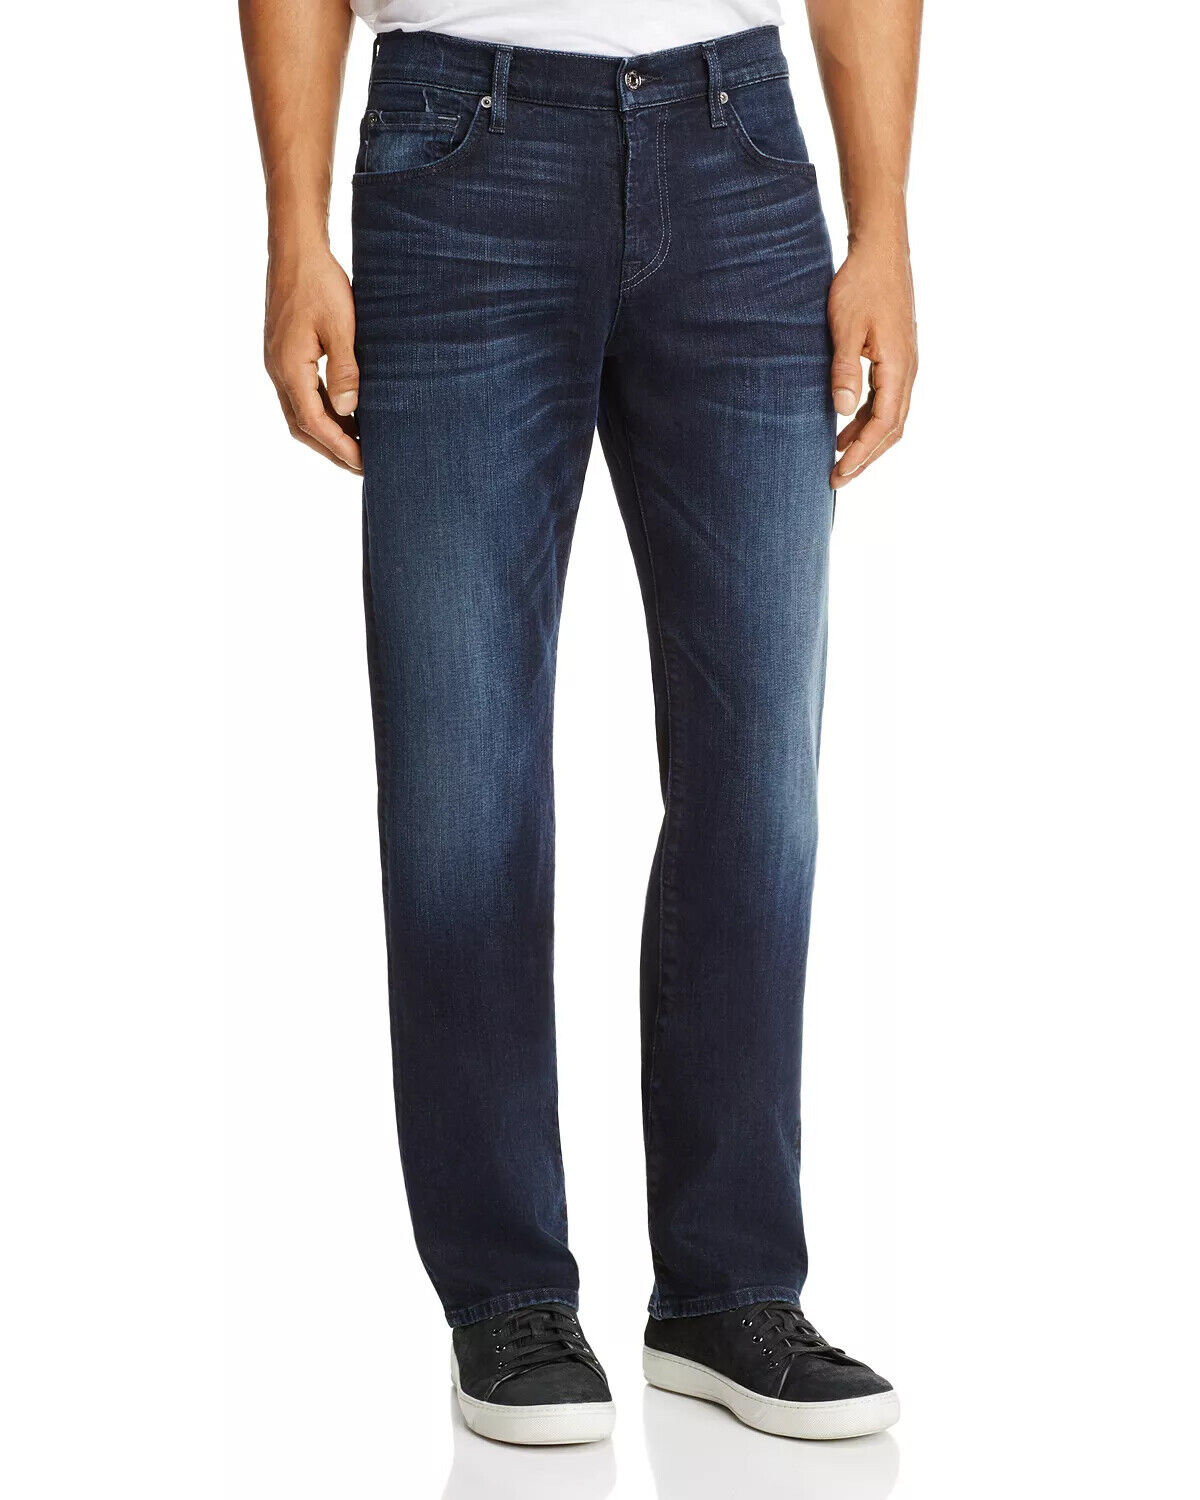 NEW 7 FOR ALL MANKIND CARSEN LUXE PERFORMANCE STRAIGHT INDIGO blueE JEANS 28 X 32